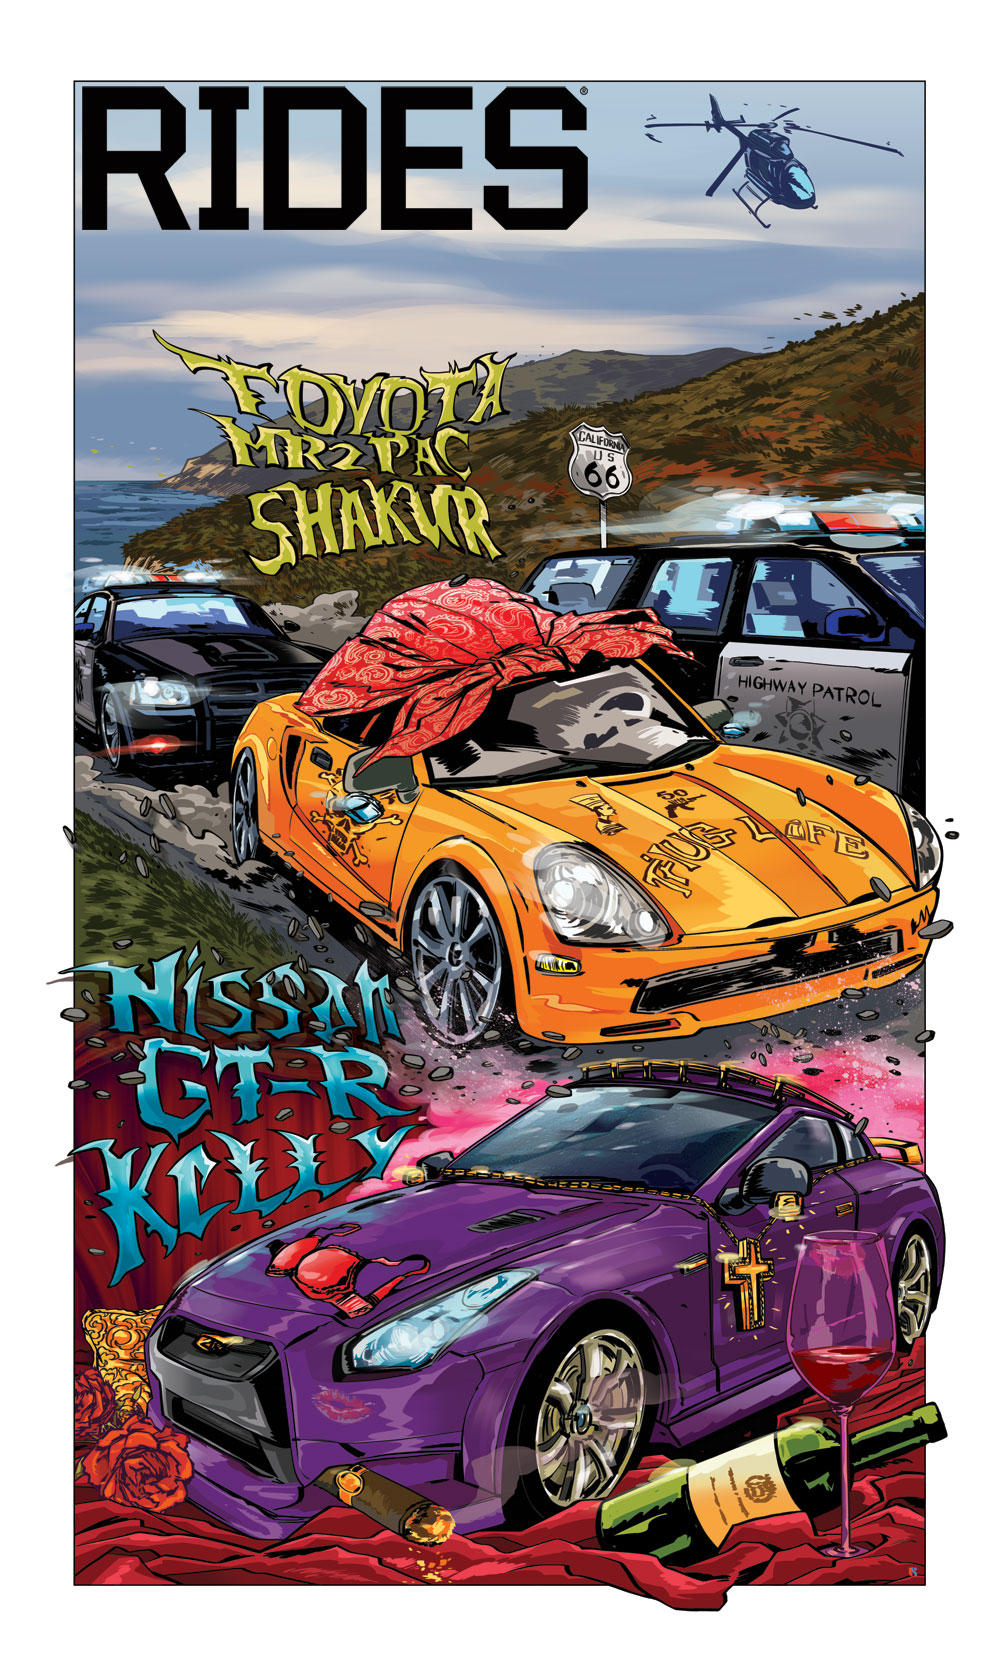 rides cars cartoon car toon mash box r kelly tupac 2pac shakur tyota mr2 nissan gt-r